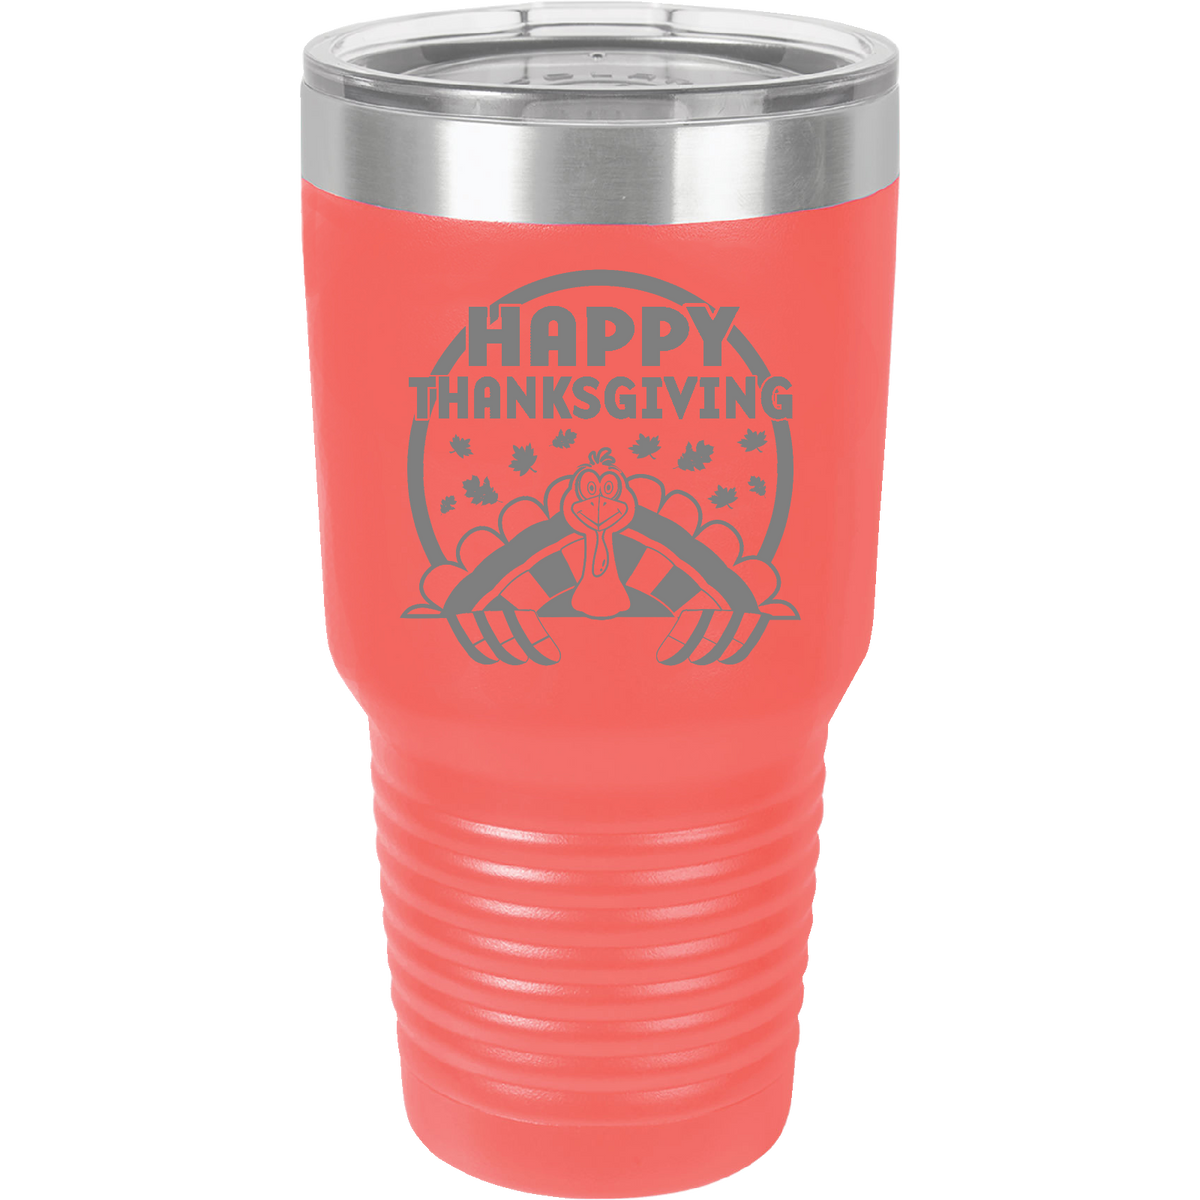 Happy Thanksgiving - 30oz. Engraved Tumbler with Clear Lid